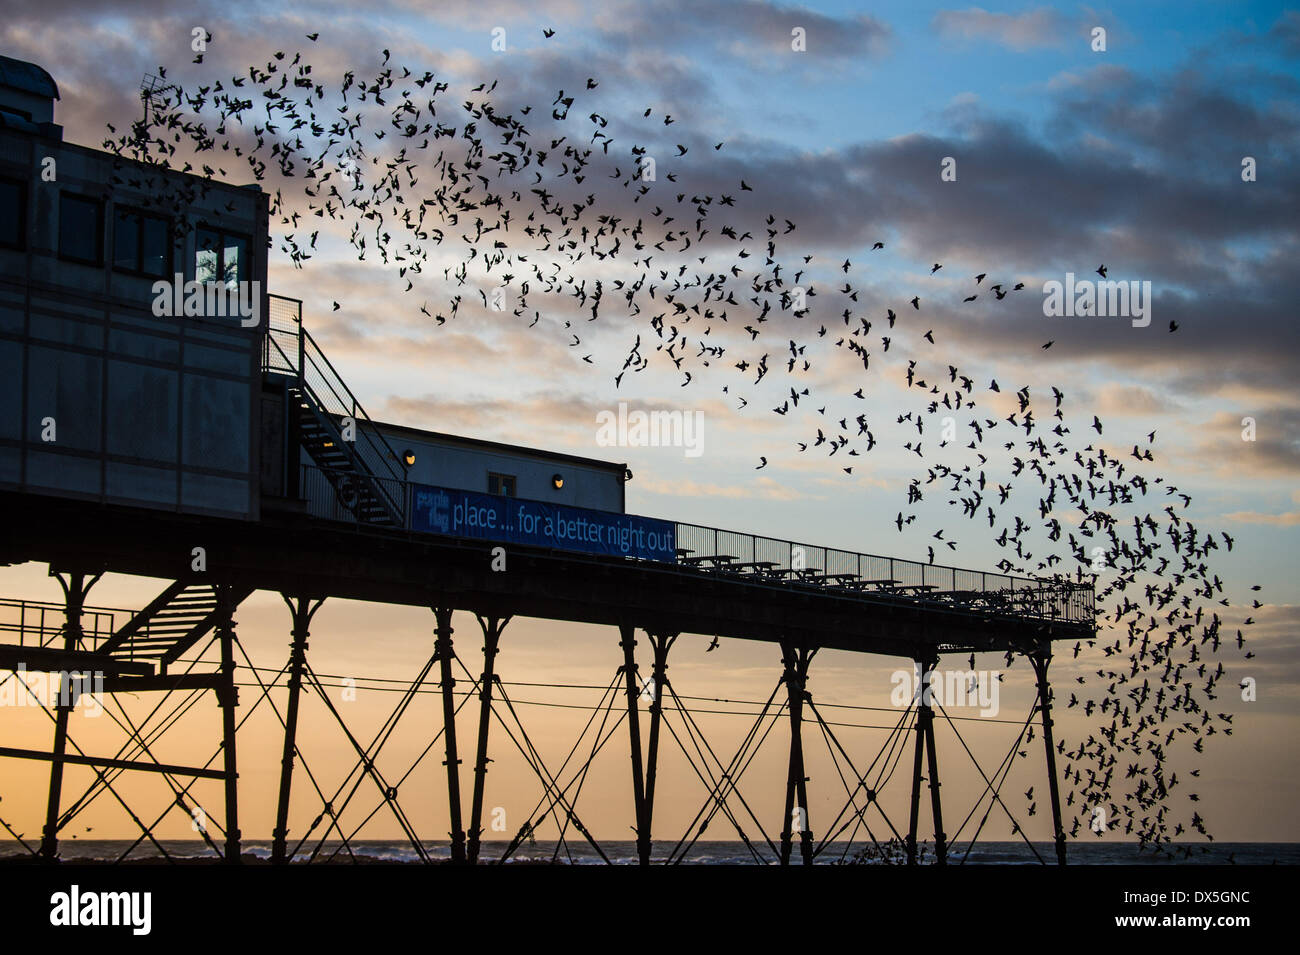 Aberystwyth Wales UK, Tuesday 18 March 2014  At dusk every day during the winter and early spring, tens of thousands of starlings gather in huge 'murmurations' before roosting for the night on the cast iron legs of the Victorian seaside pier at Aberystwyth on the west  wales coast, UK   photo Credit: keith morris/Alamy Live News - Stock Image